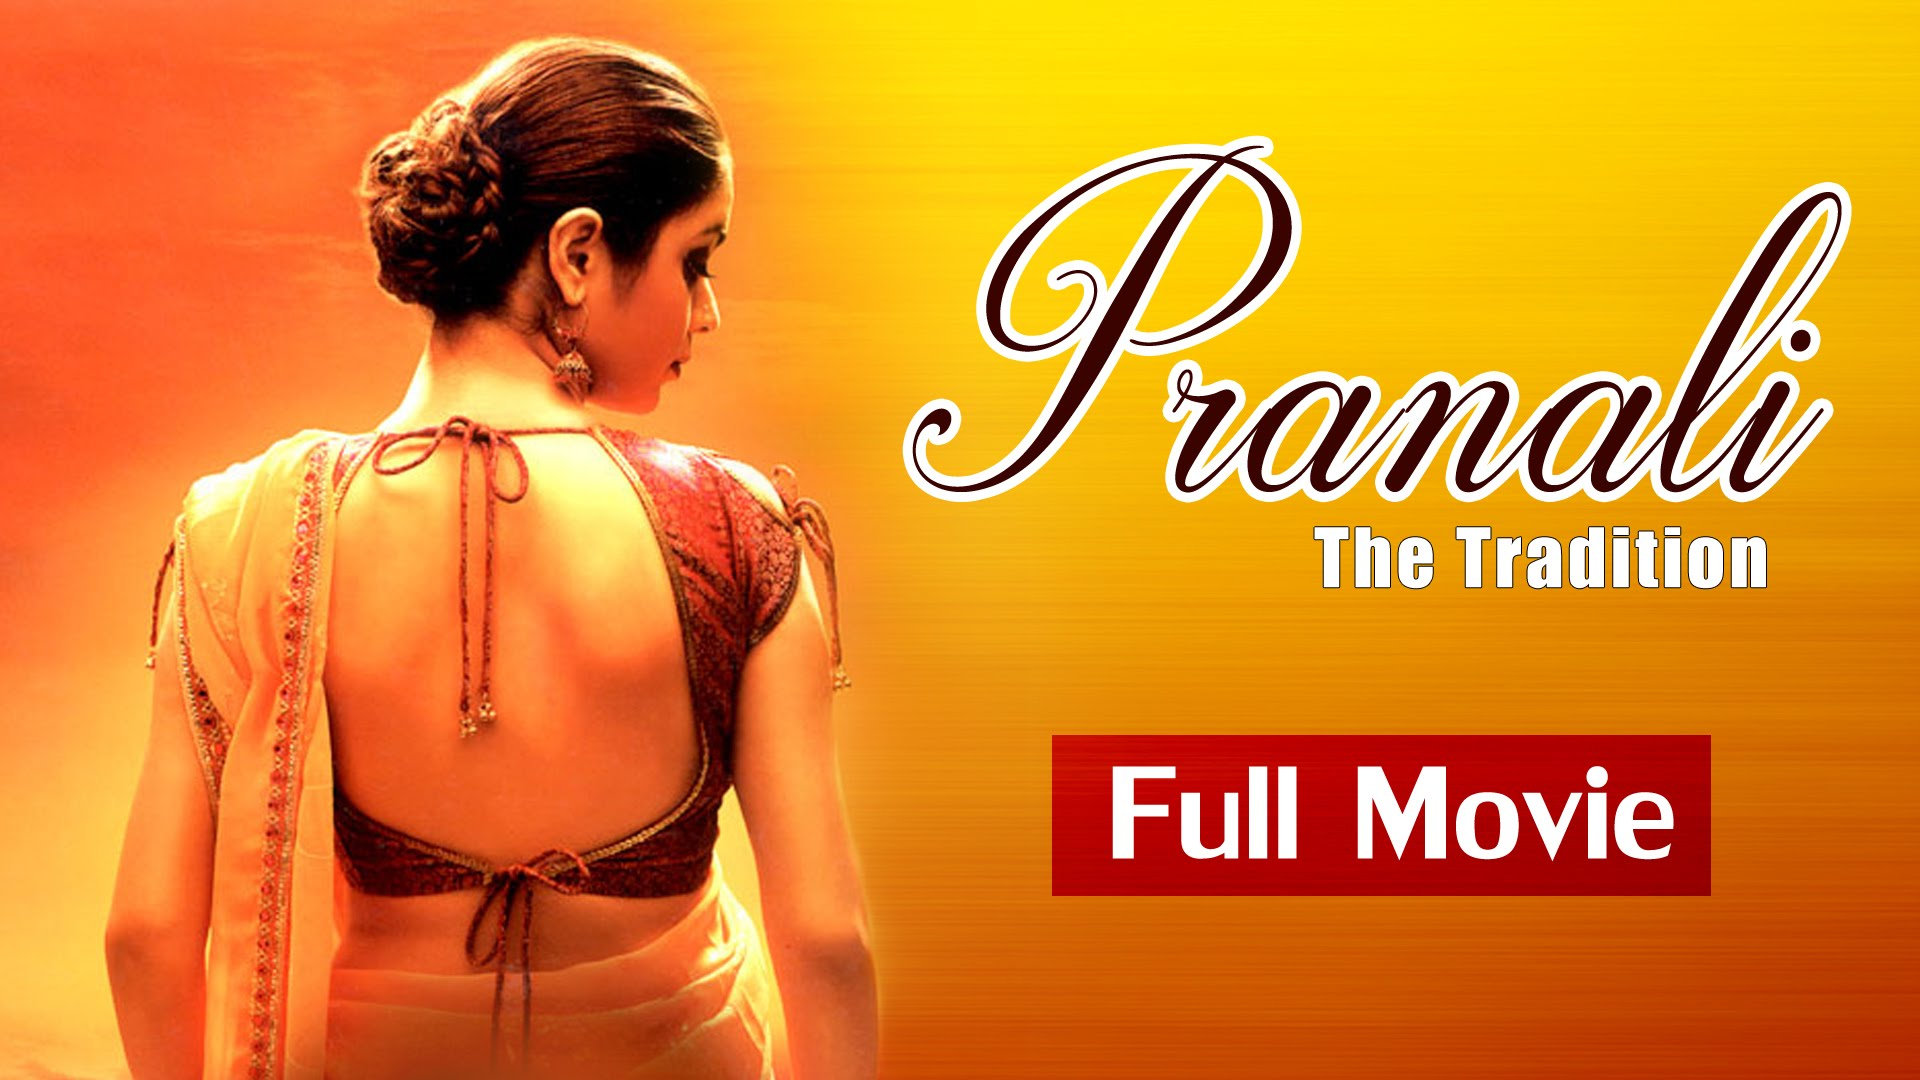 Bollywood Full Movies | Pranali – The Tradition | New Movies 2015 Full Movies | B Grade Hindi Movies